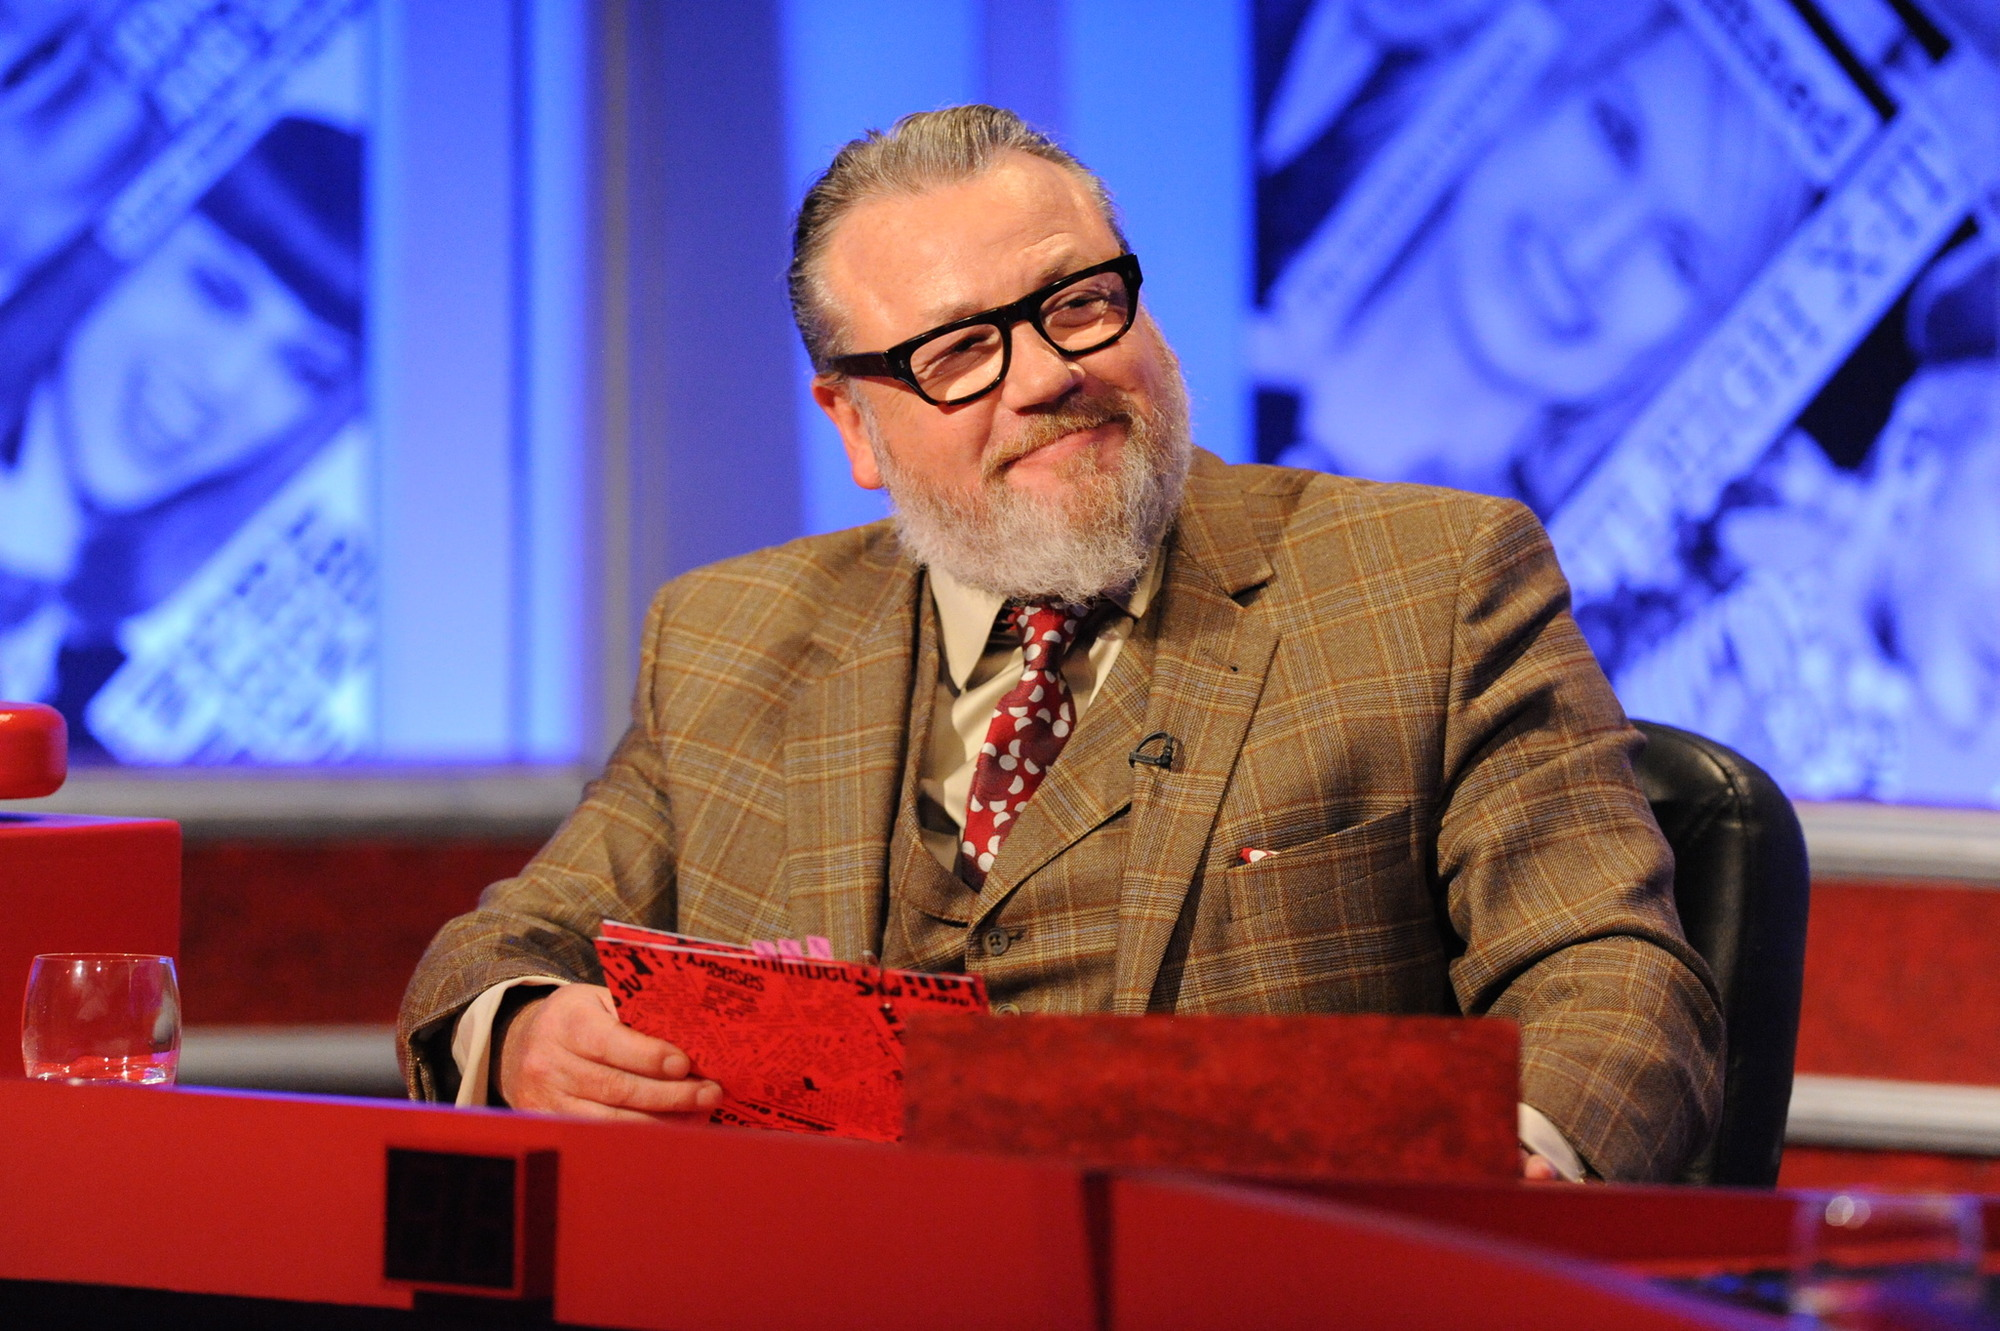 Guest host Ray Winstone divides Have I Got News For You fans